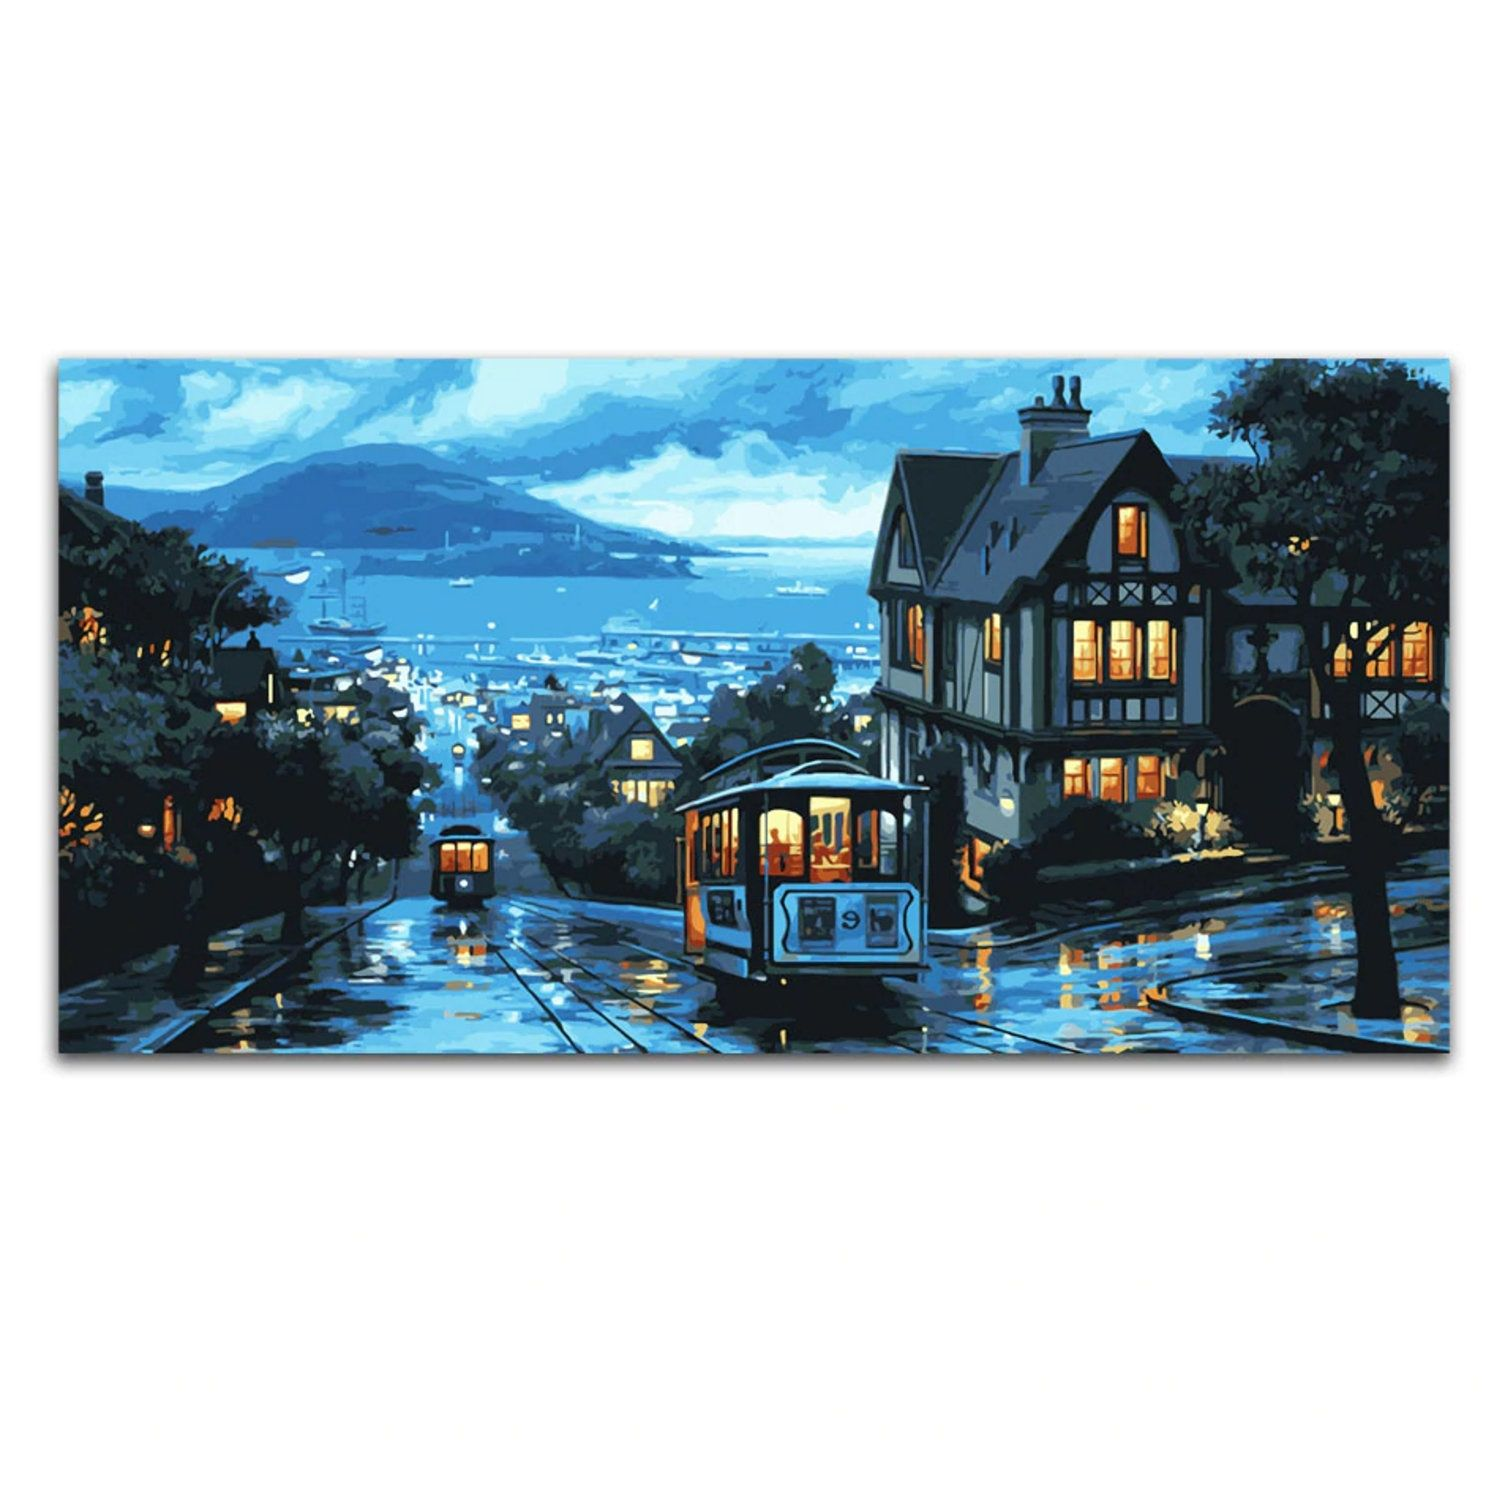 Landscape Paint By Number Kit Large Wall Art Tram City Night Diy Kit Painting On Canvas Home Decor Craft Kit For Adult Diy Gift Hobby Kit Paint By Number Kits Canvas